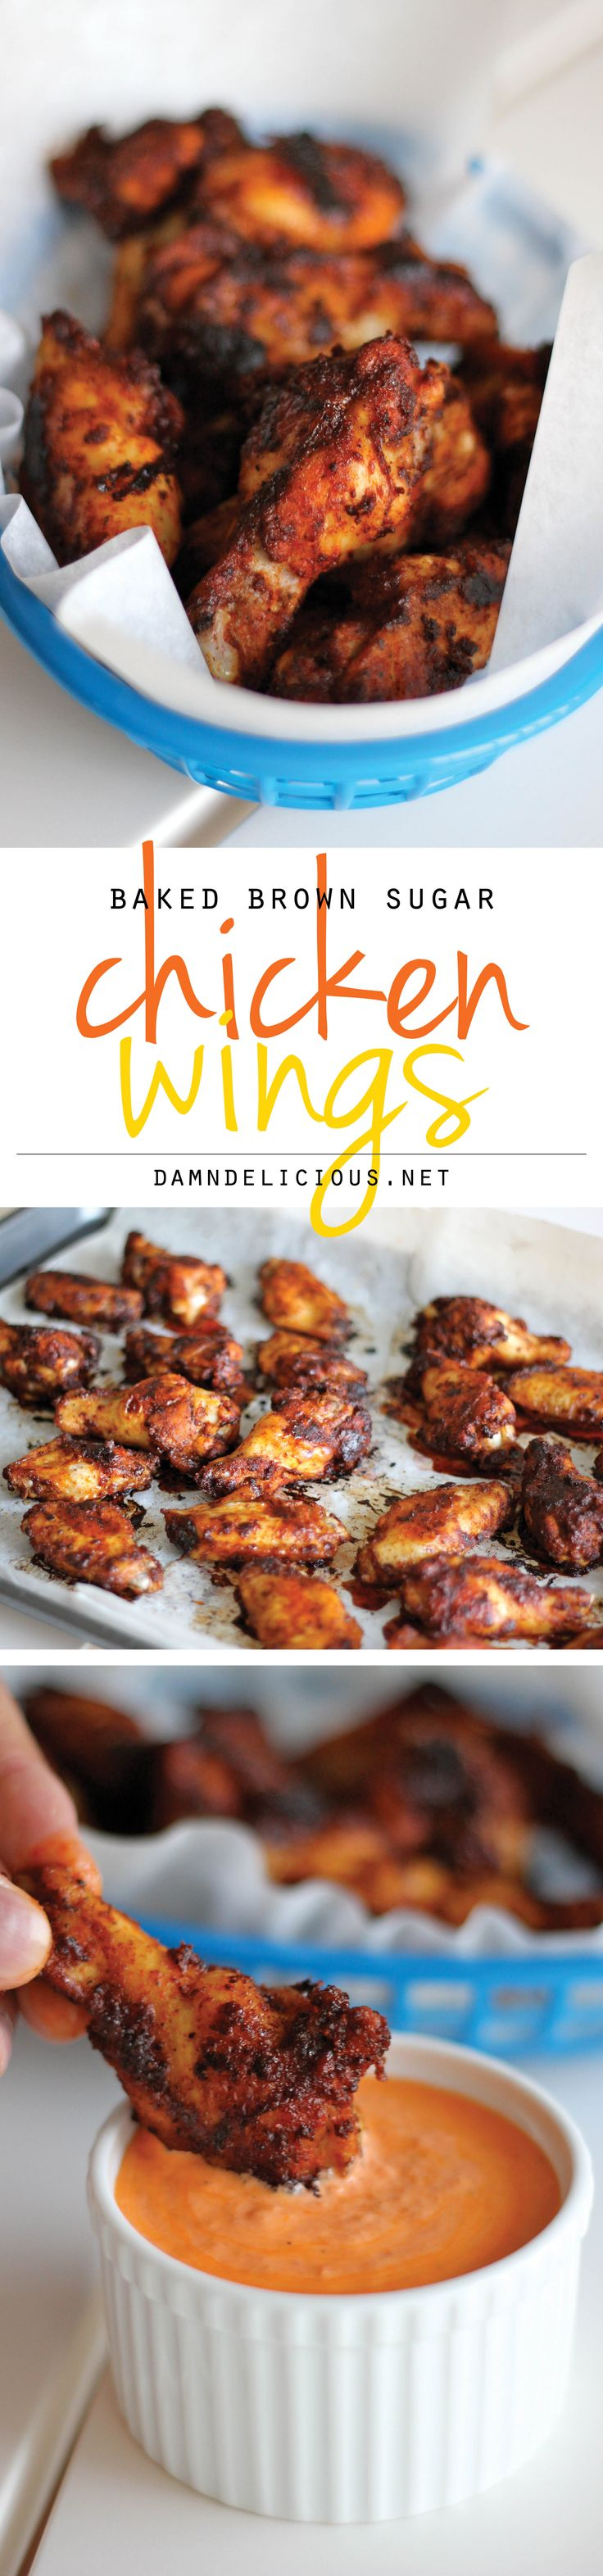 Baked Brown Sugar Chicken Wings with Roasted Red Pepper Cream Sauce - Amazingly crisp, baked wings served with a creamy dipping sauce!